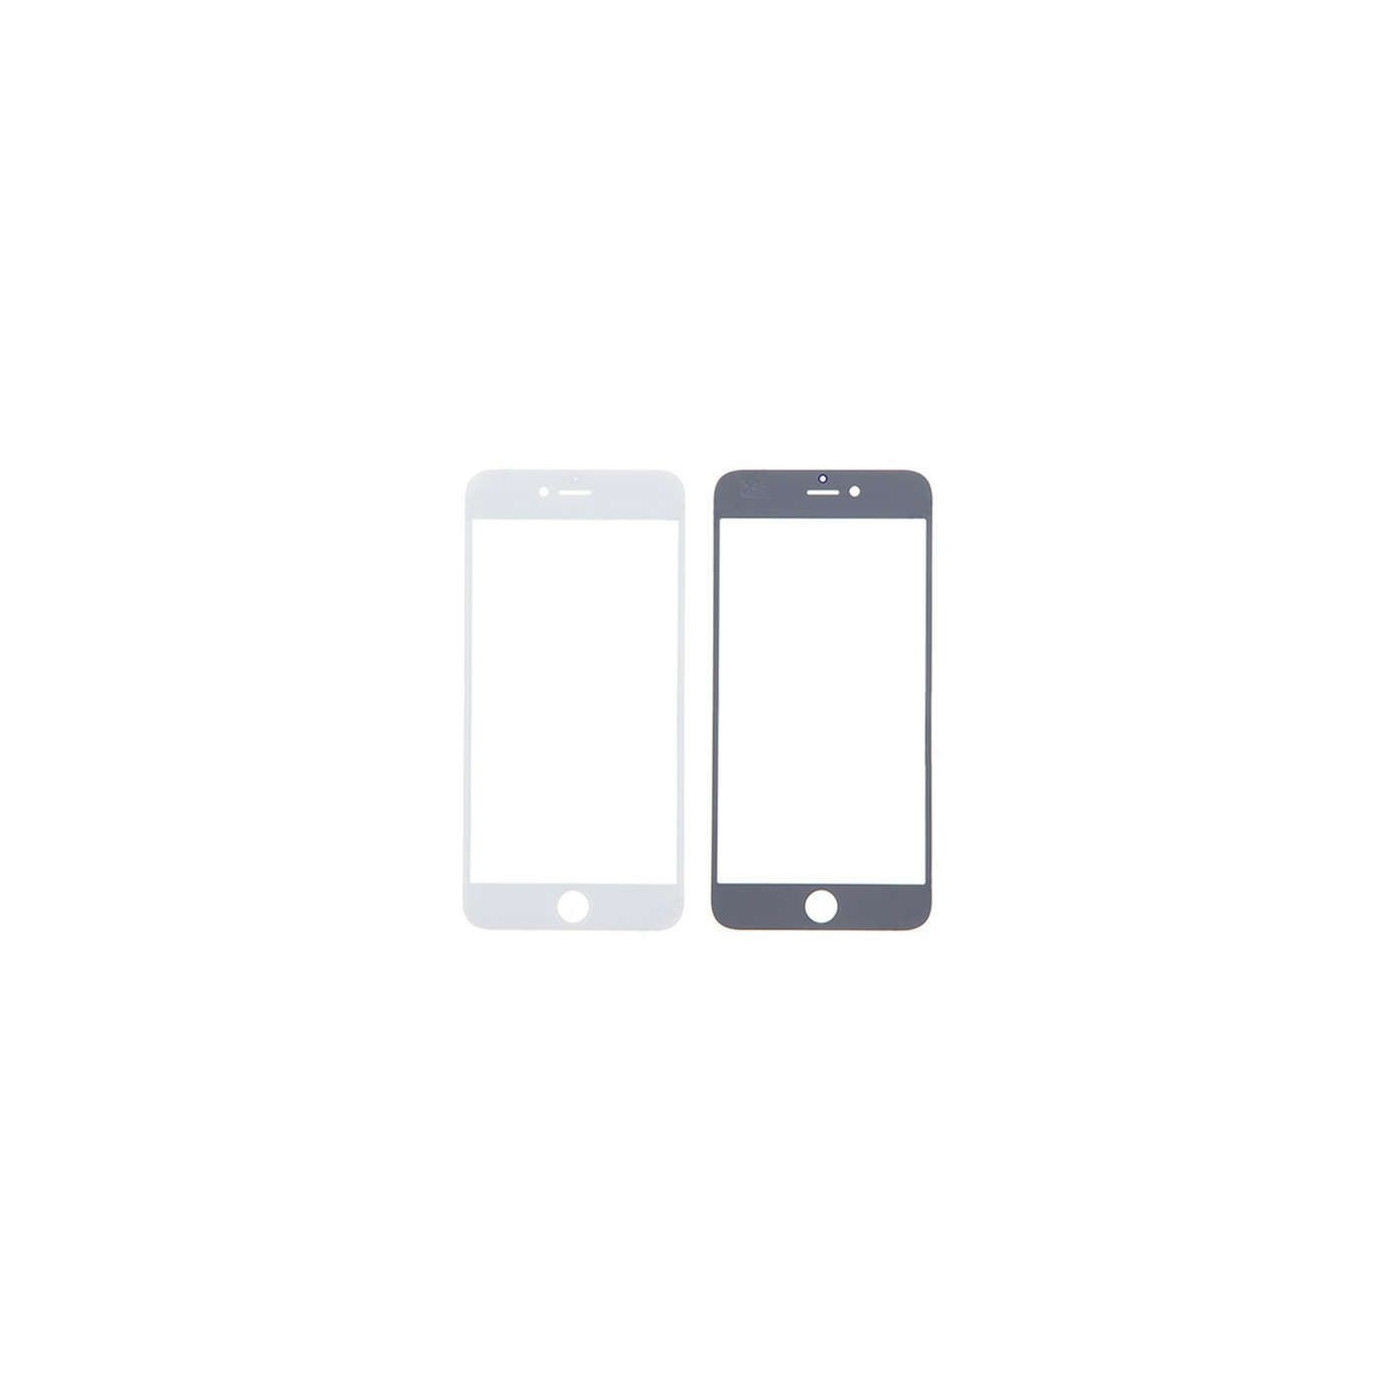 Vetro vetrino frontale per iphone 6 plus - 6s plus bianco touch screen